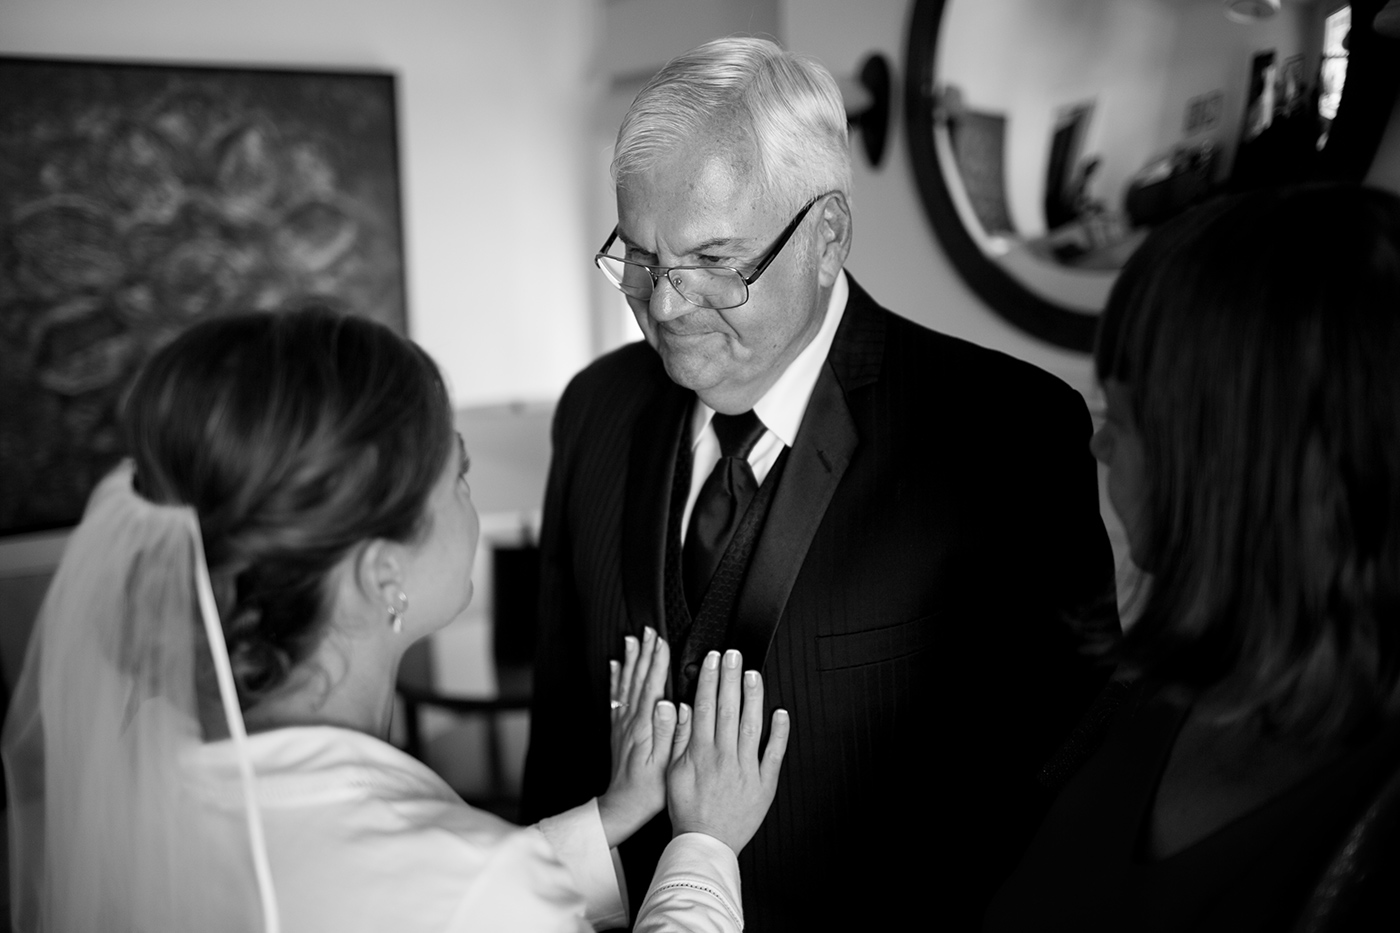 St_-Francis-Yacht-Club-Wedding-Photos-24-